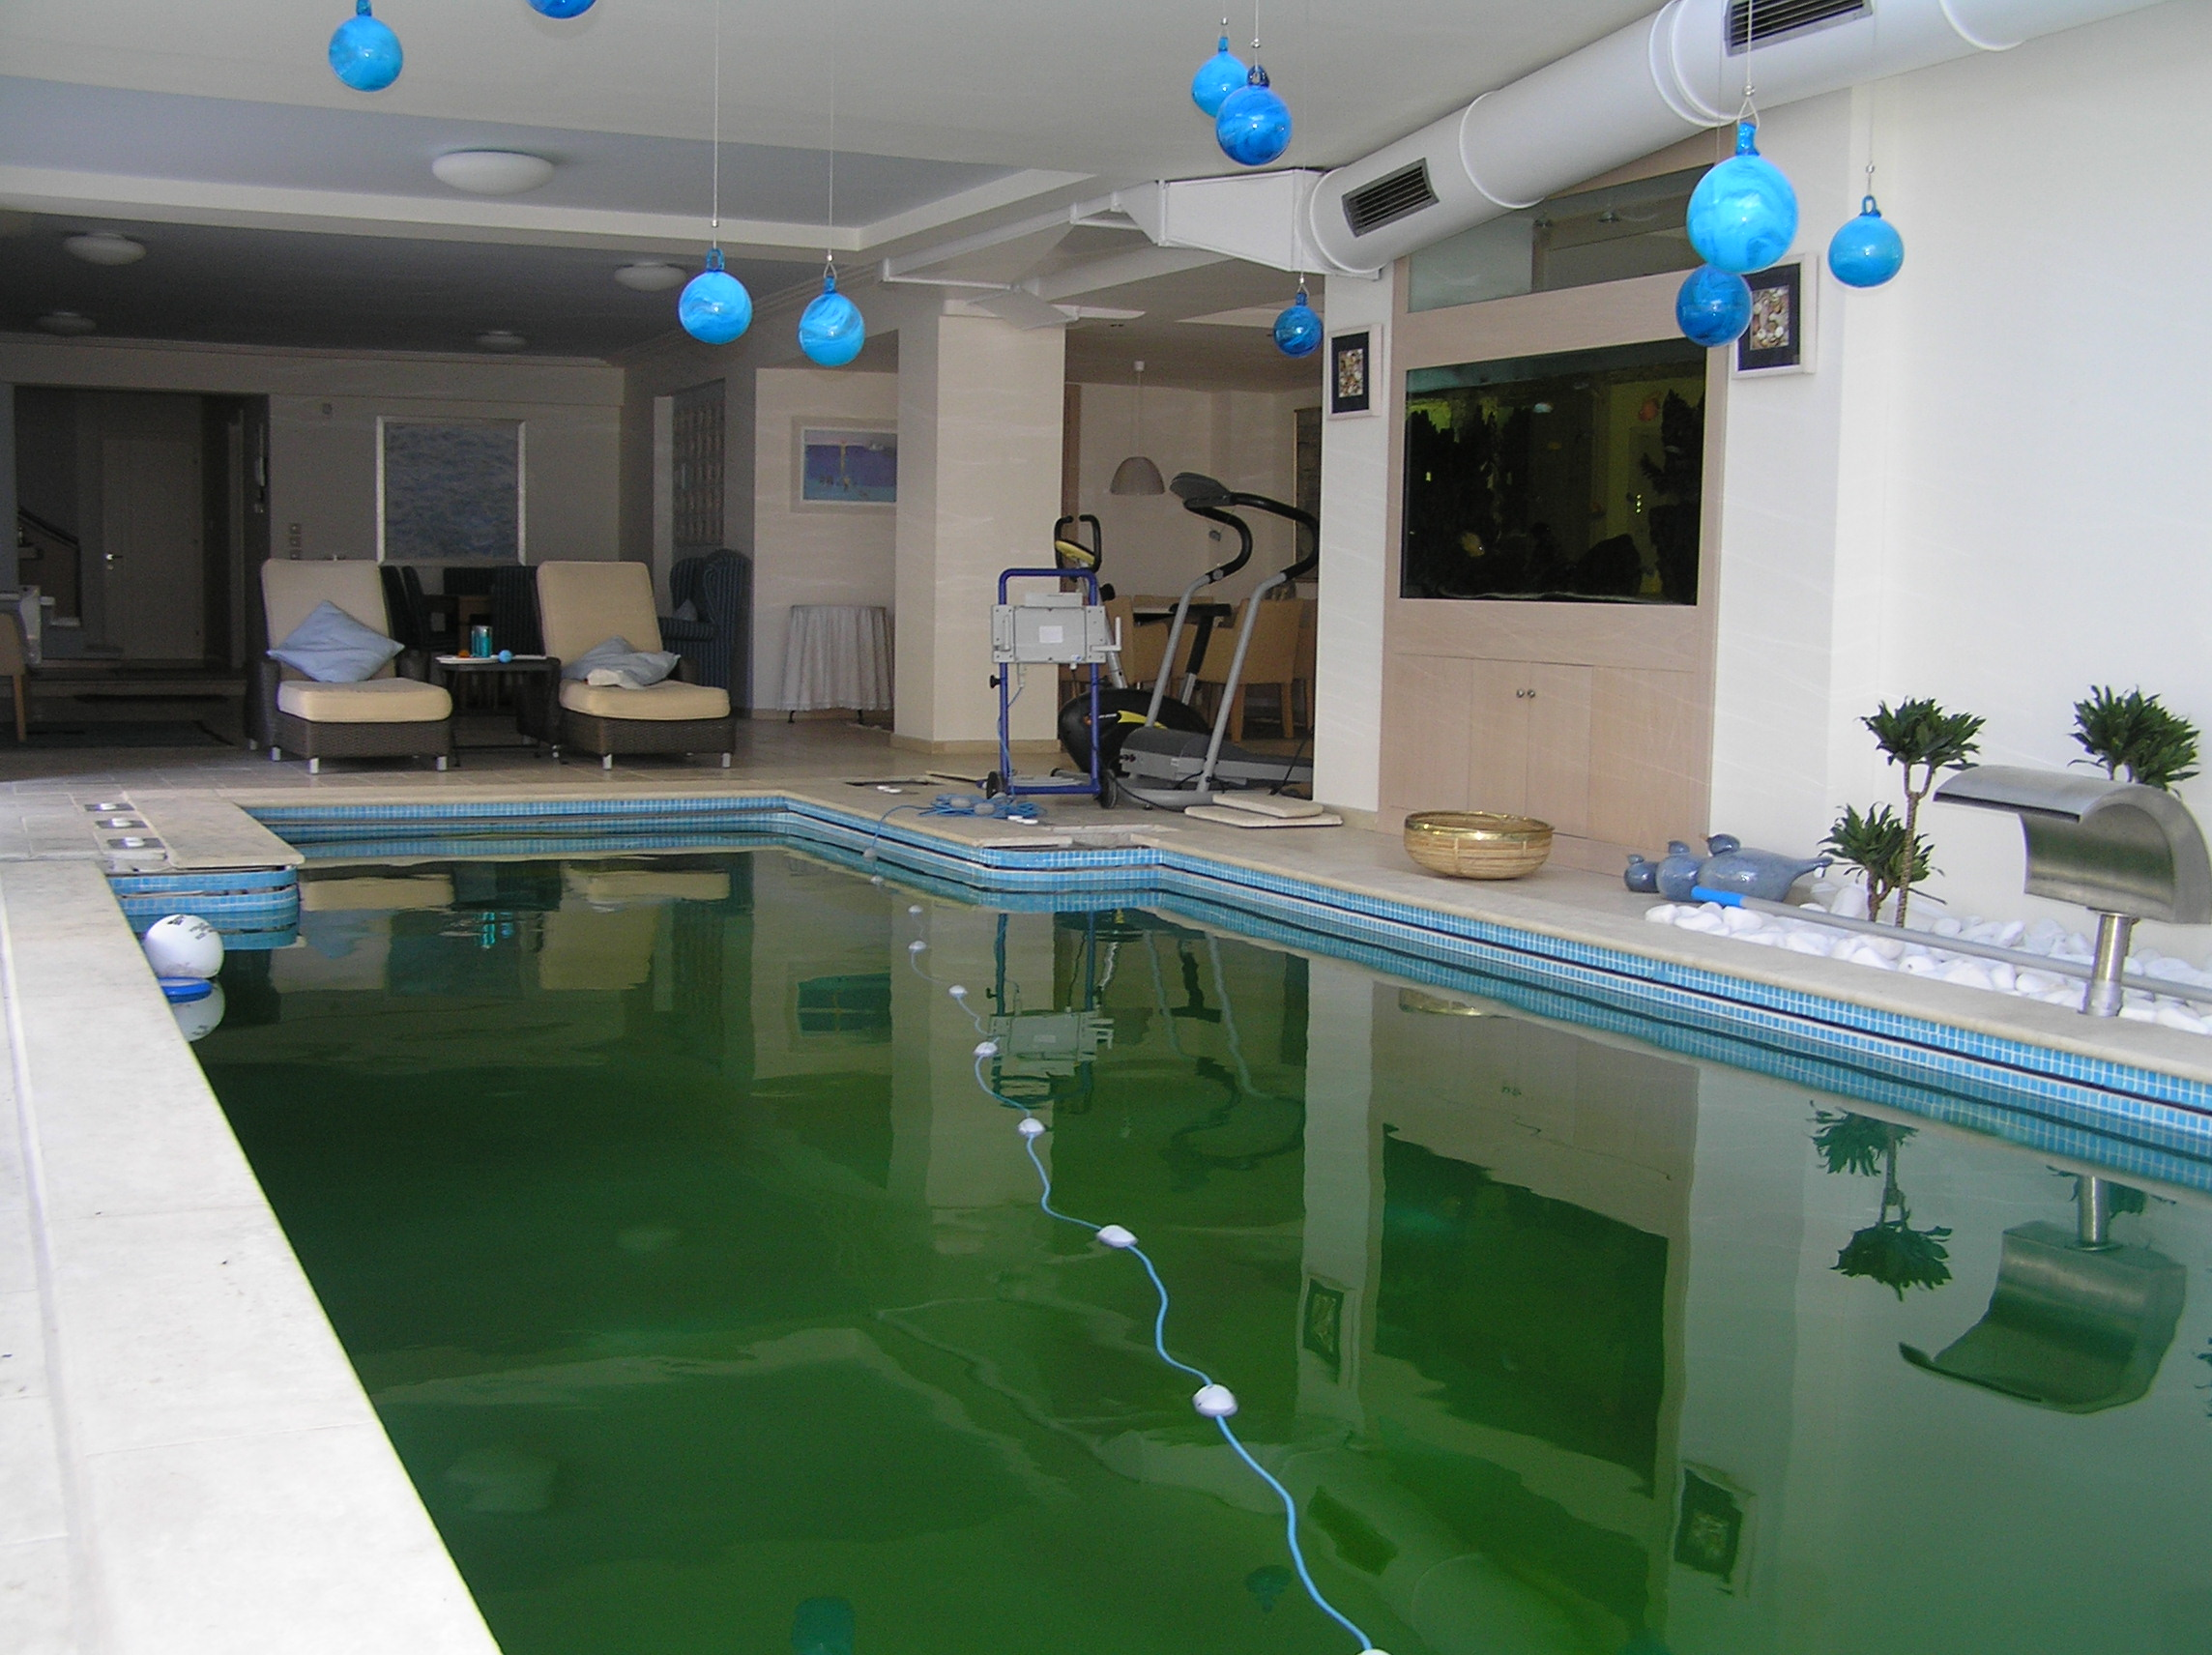 helional_solar_water_pool_system_panorama_1